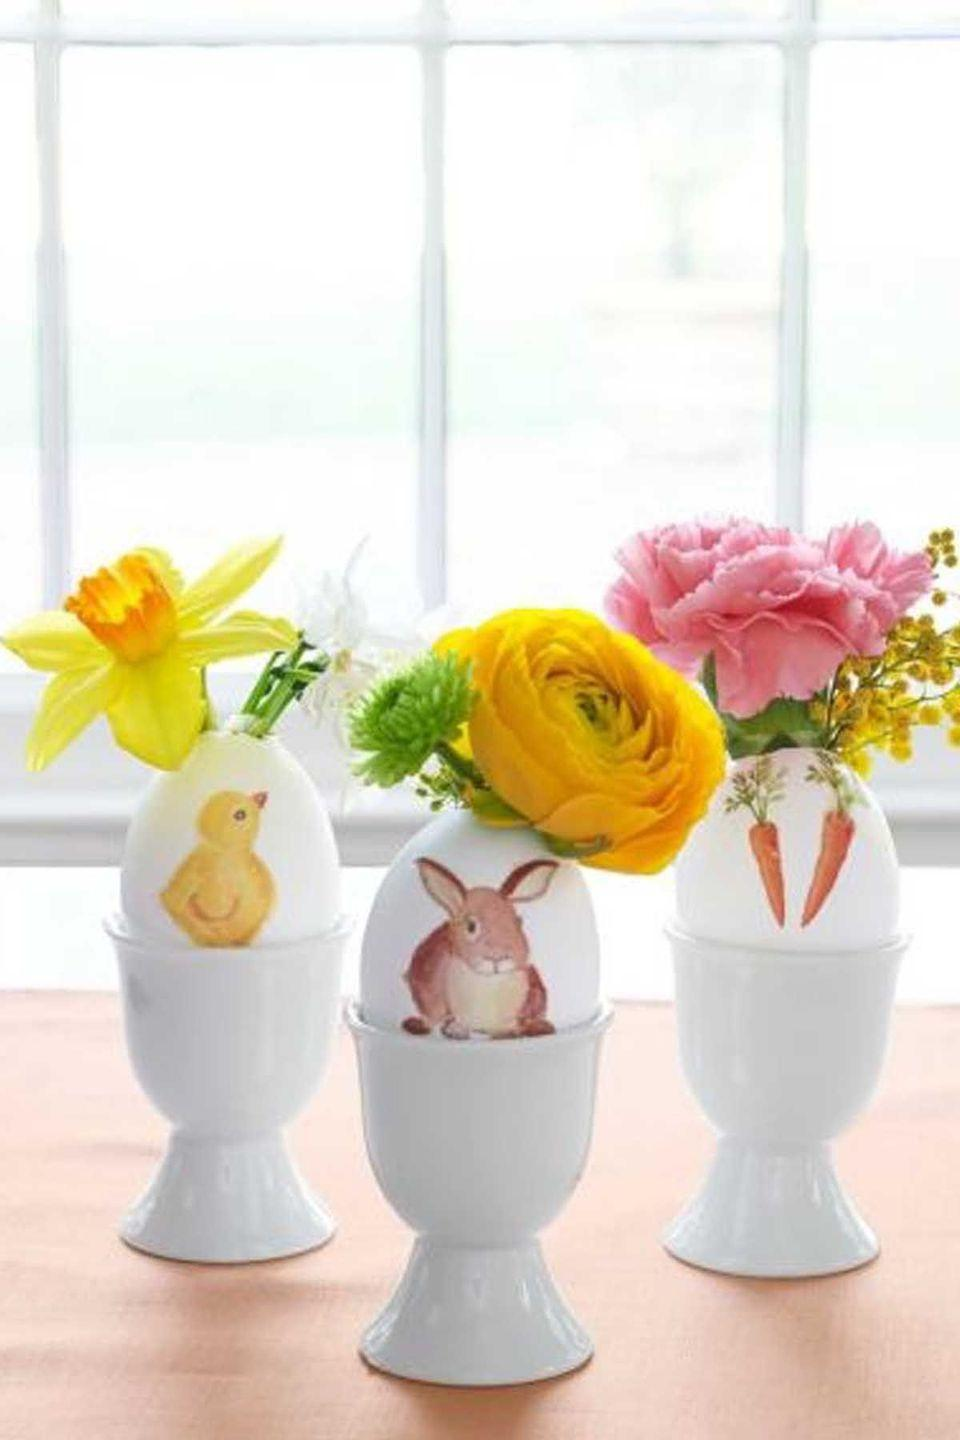 """<p>Download our <a href=""""http://wdy.h-cdn.co/assets/downloads/1456243733_-_wd-easter-watercolor-images.pdf"""" rel=""""nofollow noopener"""" target=""""_blank"""" data-ylk=""""slk:watercolor images template"""" class=""""link rapid-noclick-resp"""">watercolor images template</a>, and print onto Grafix Rub-Onz Transfer Film. Tip: You may need to select the photo paper setting on your printer. Follow package instructions to transform images into adhesive decals, then apply to eggs by rubbing with your fingers or the flat end of a wine cork.</p><p><strong><a class=""""link rapid-noclick-resp"""" href=""""https://www.amazon.com/Grafix-Adhesive-2-Inch-11-Inch-6-Pack/dp/B000S15KDS/?tag=syn-yahoo-20&ascsubtag=%5Bartid%7C10070.g.1751%5Bsrc%7Cyahoo-us"""" rel=""""nofollow noopener"""" target=""""_blank"""" data-ylk=""""slk:SHOP ADHESIVE FILM"""">SHOP ADHESIVE FILM</a></strong></p>"""